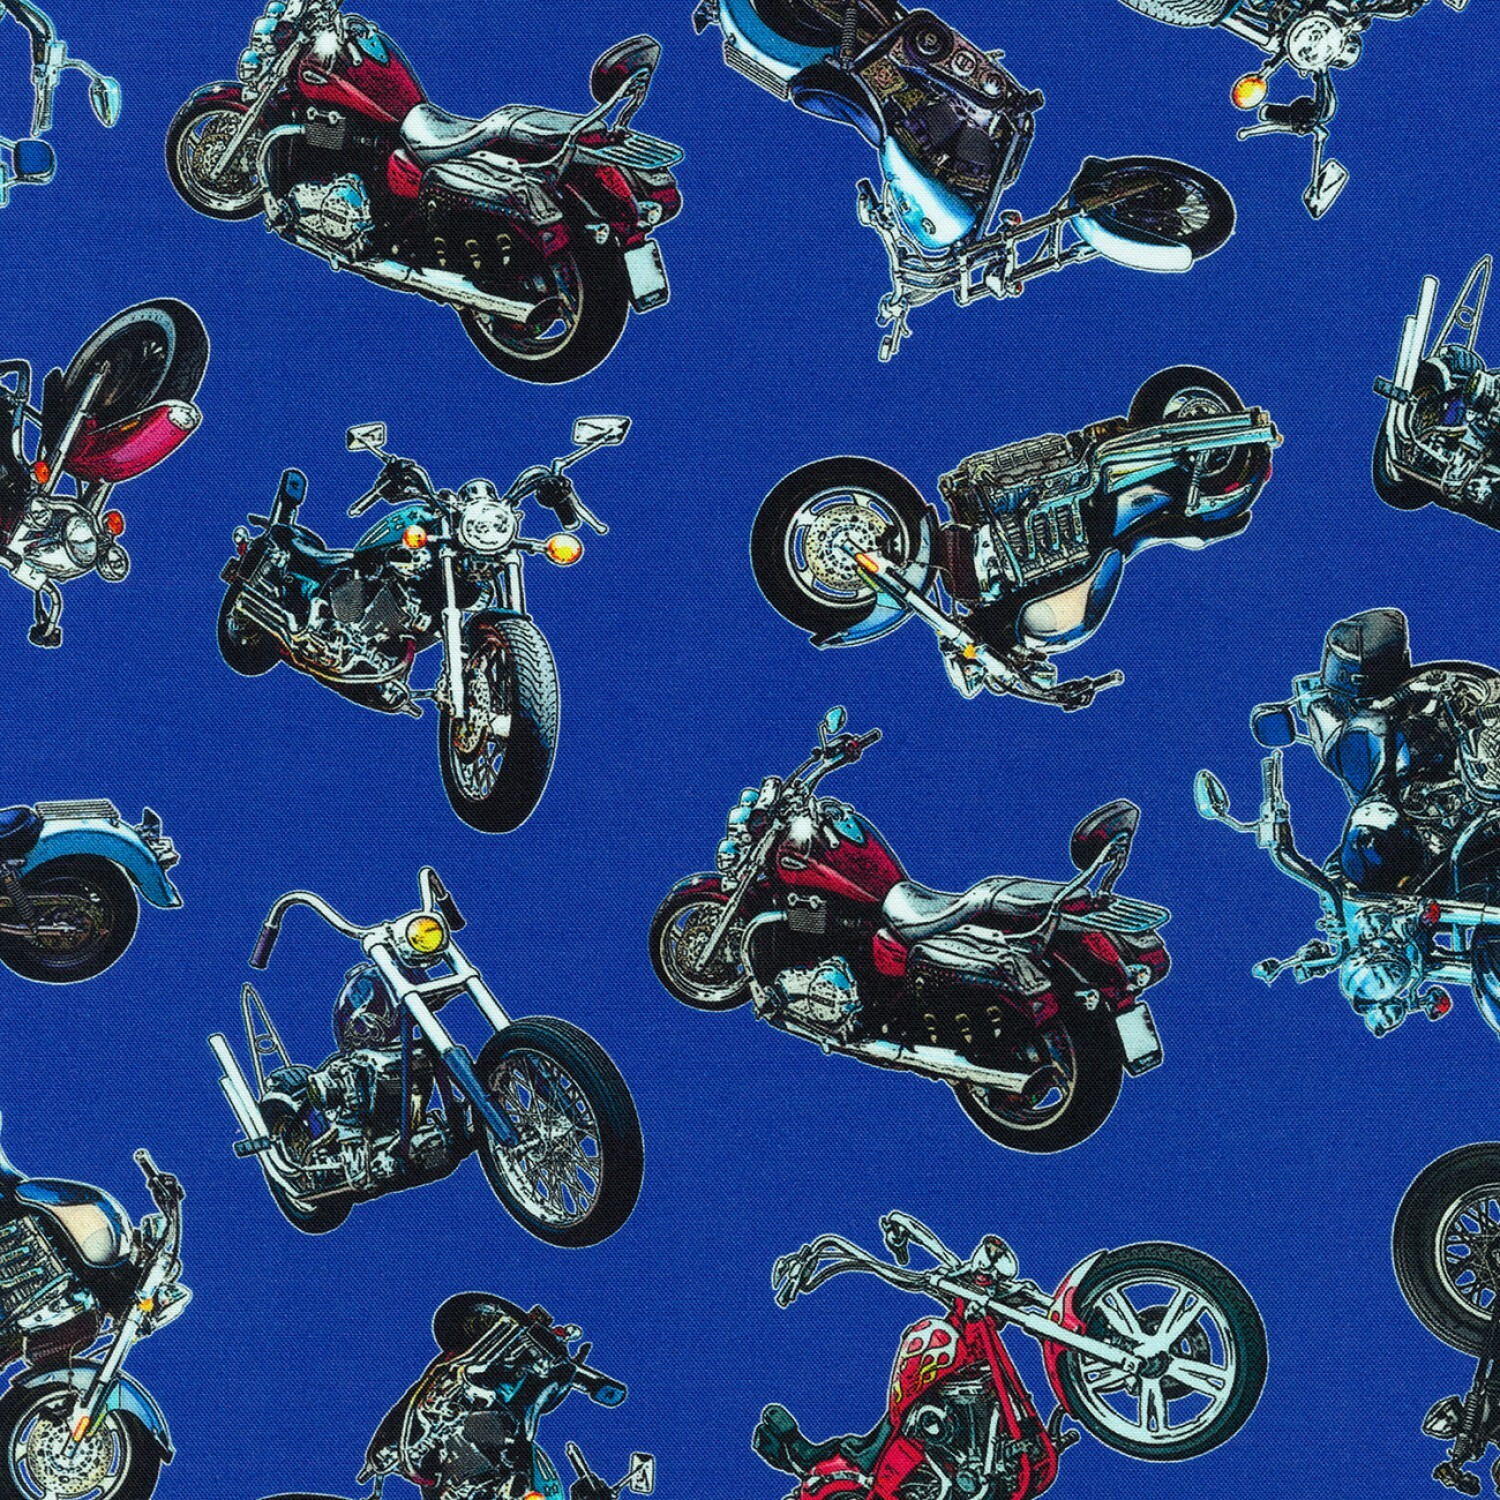 On the Road - Motorcycles on Royal Blue - 1/2m cut 57737